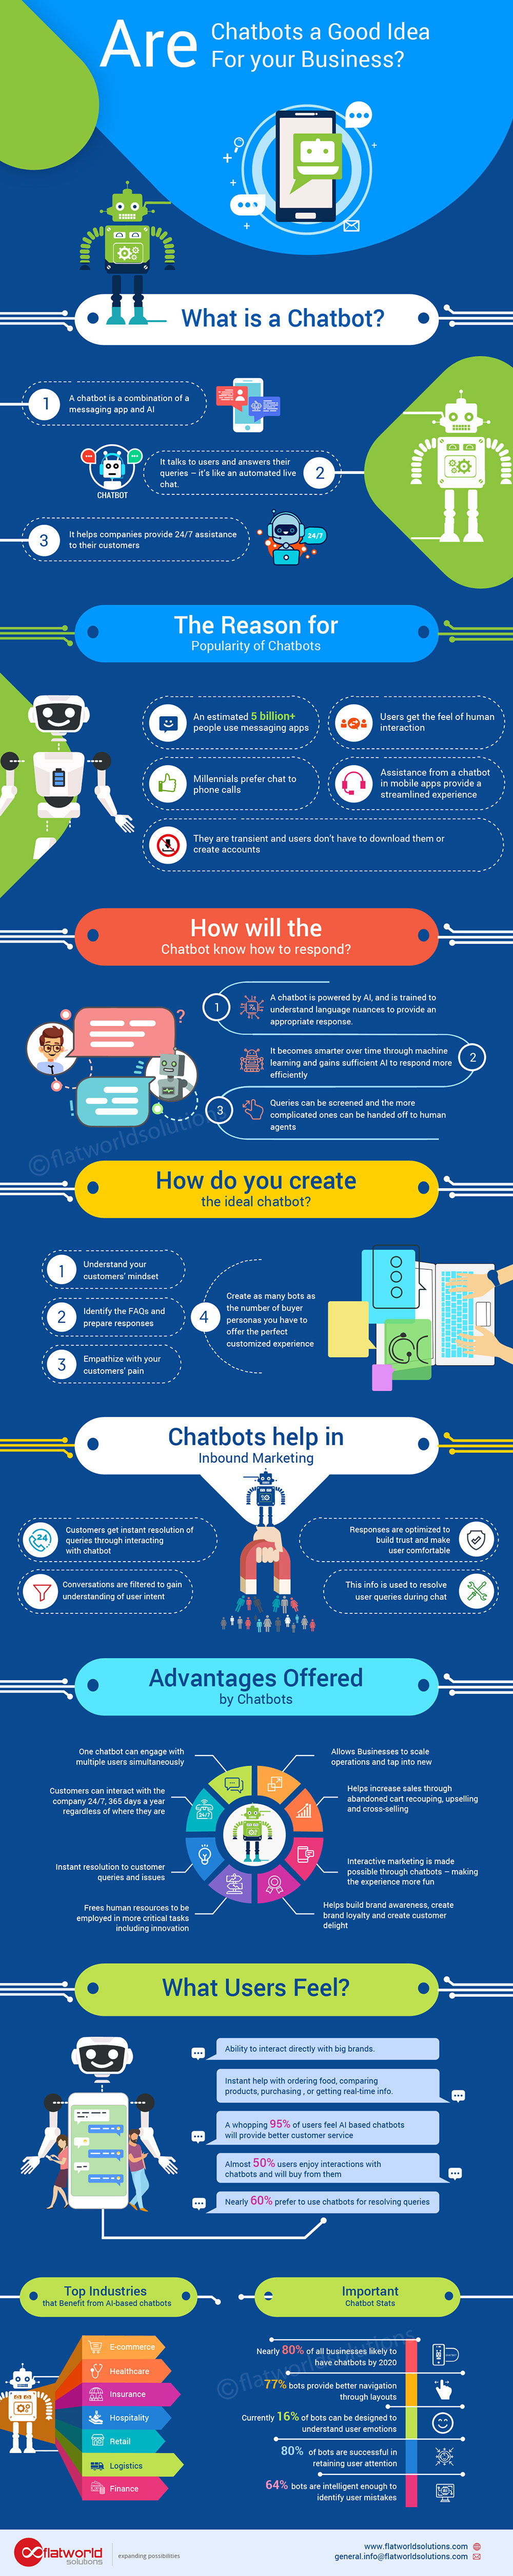 Infographics: Are Chatbots Good for your Business